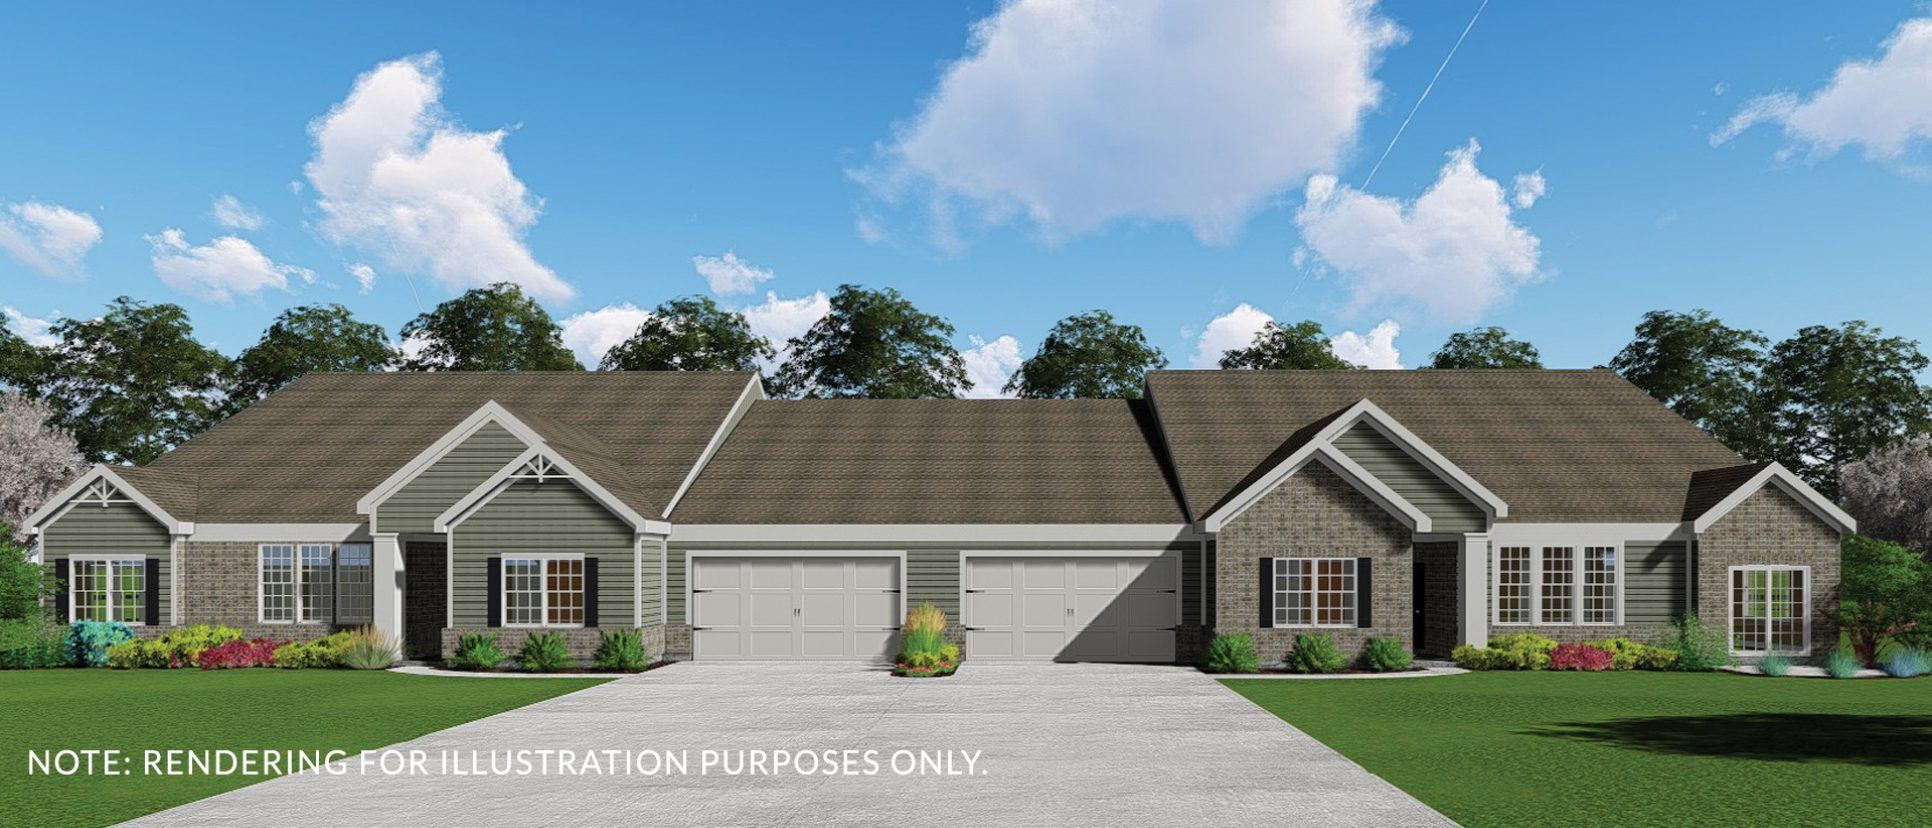 Exterior rendering of The Abbington. A condo in Soraya Farms, custom built by Design Homes and Development.